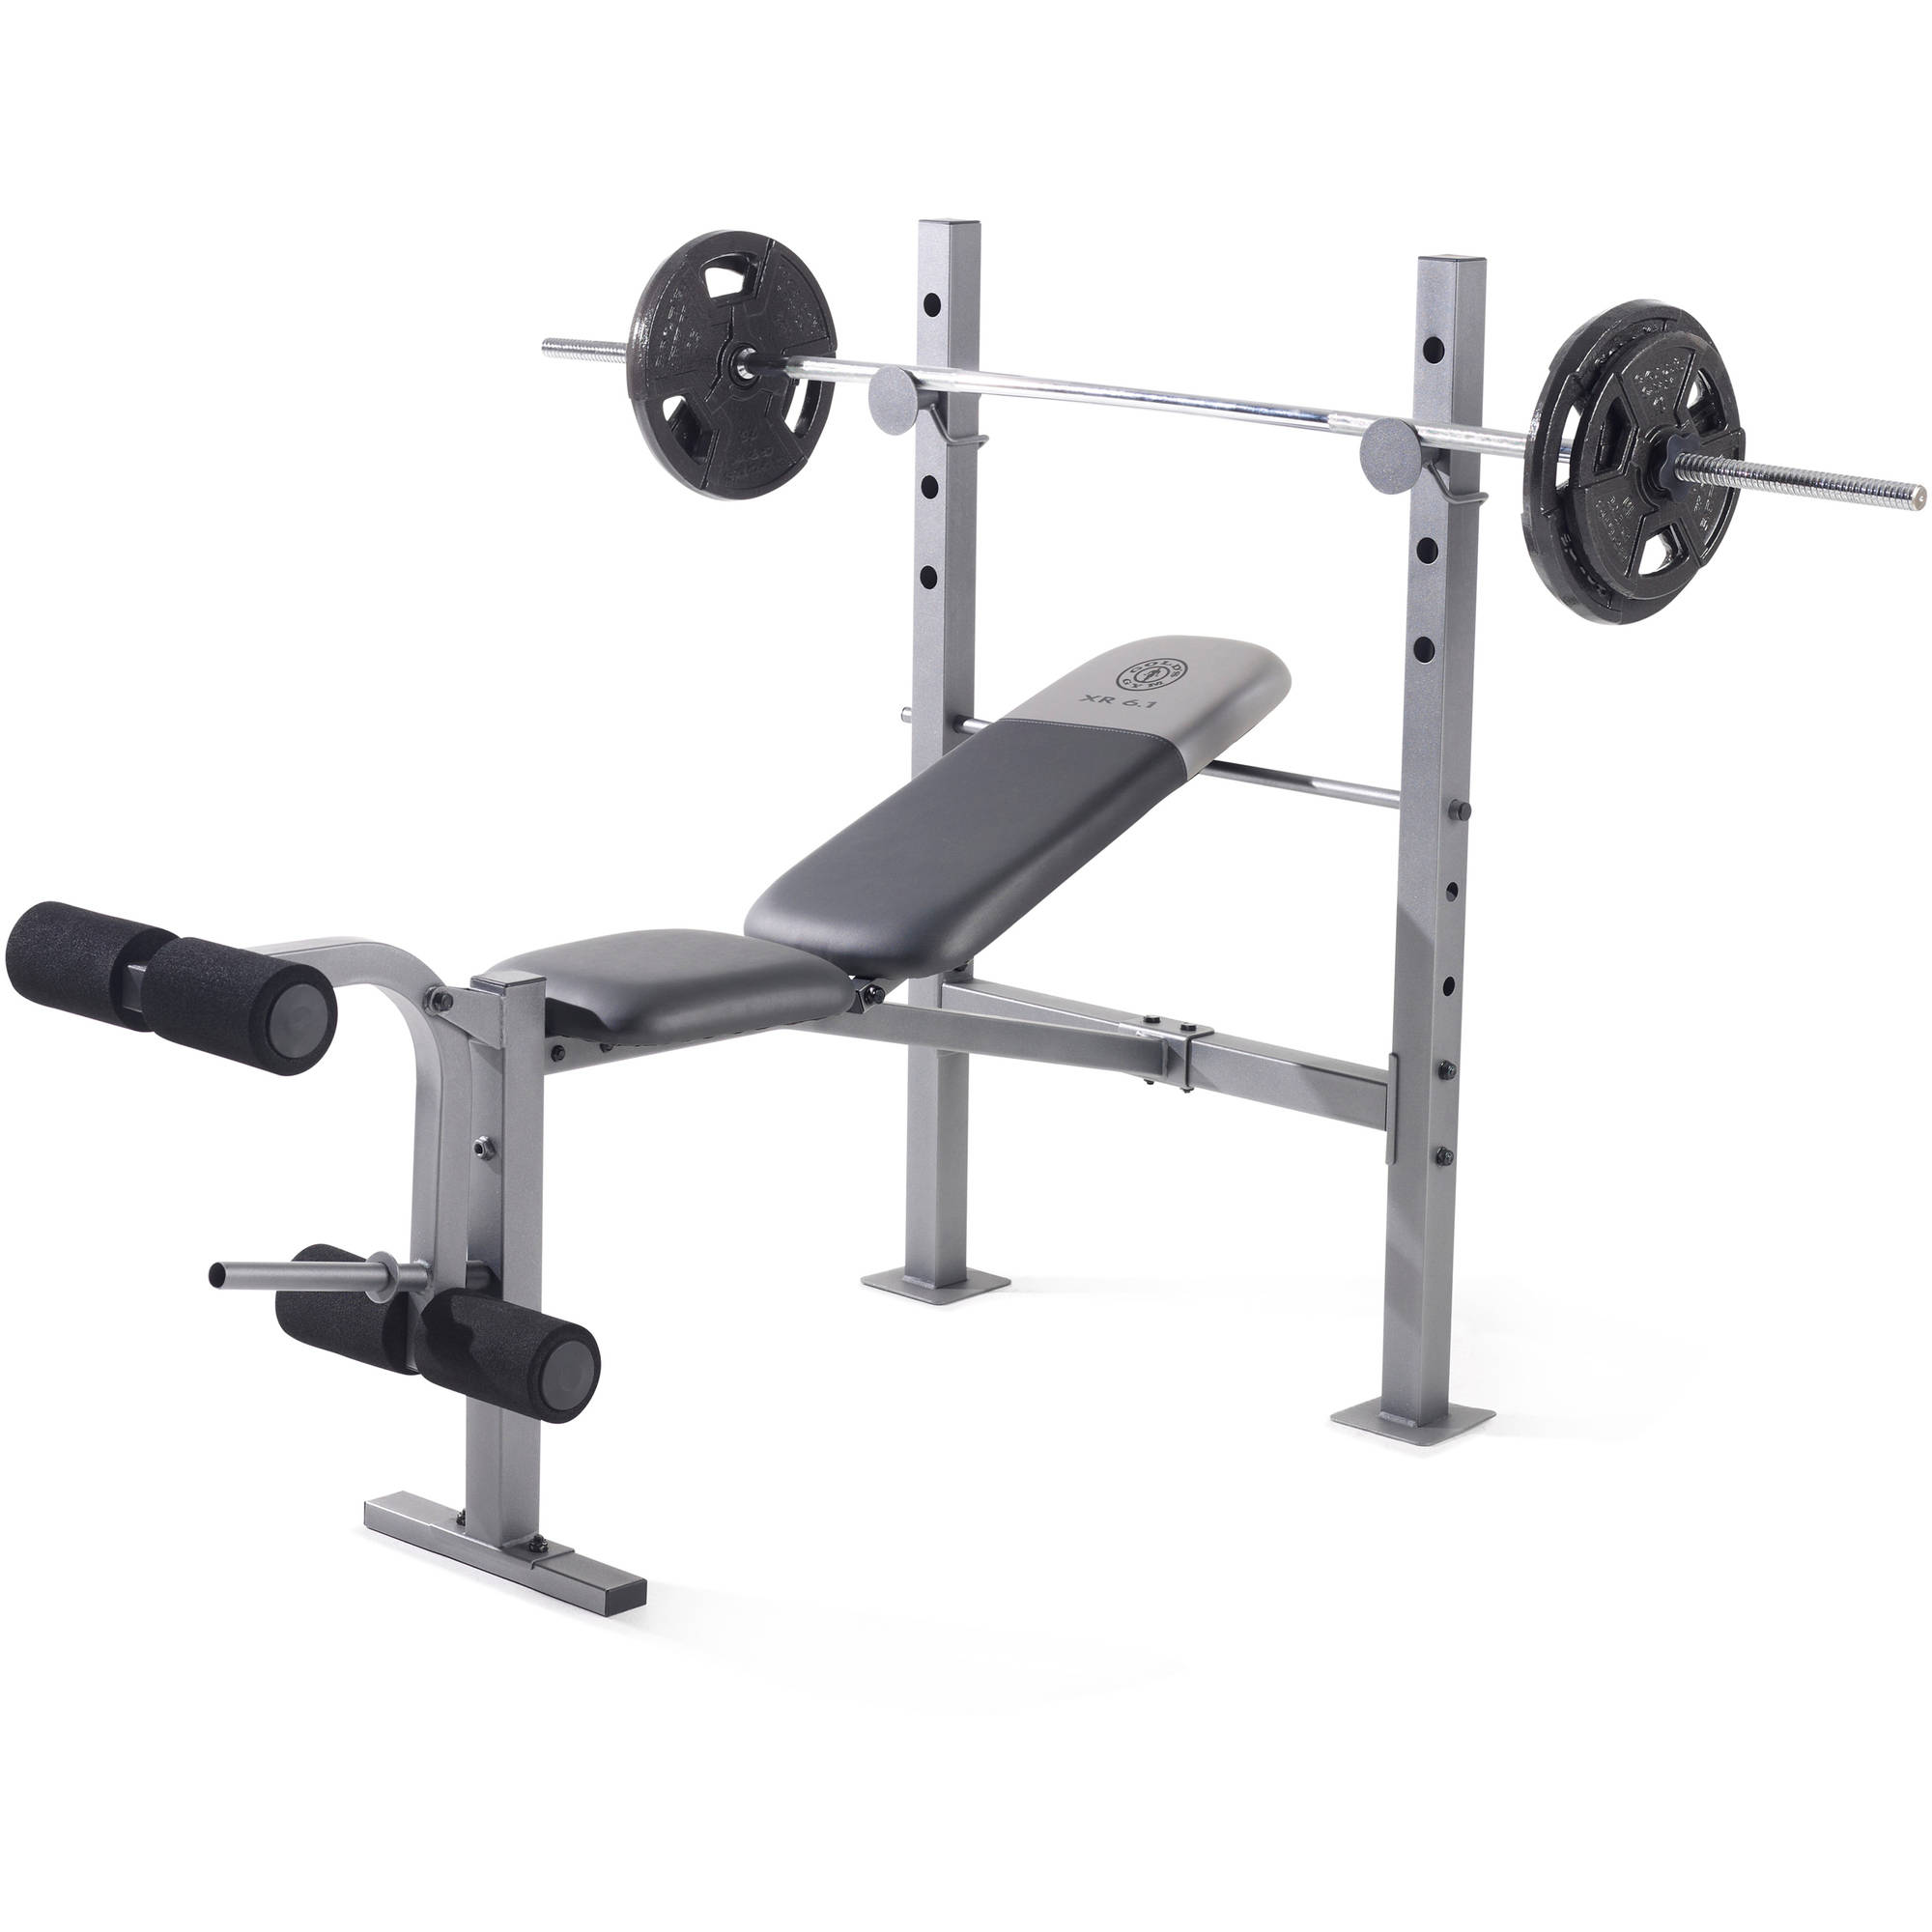 Weight bench olympic set w weights adjustable rack workout lifting gym fitness ebay Bench and weight set